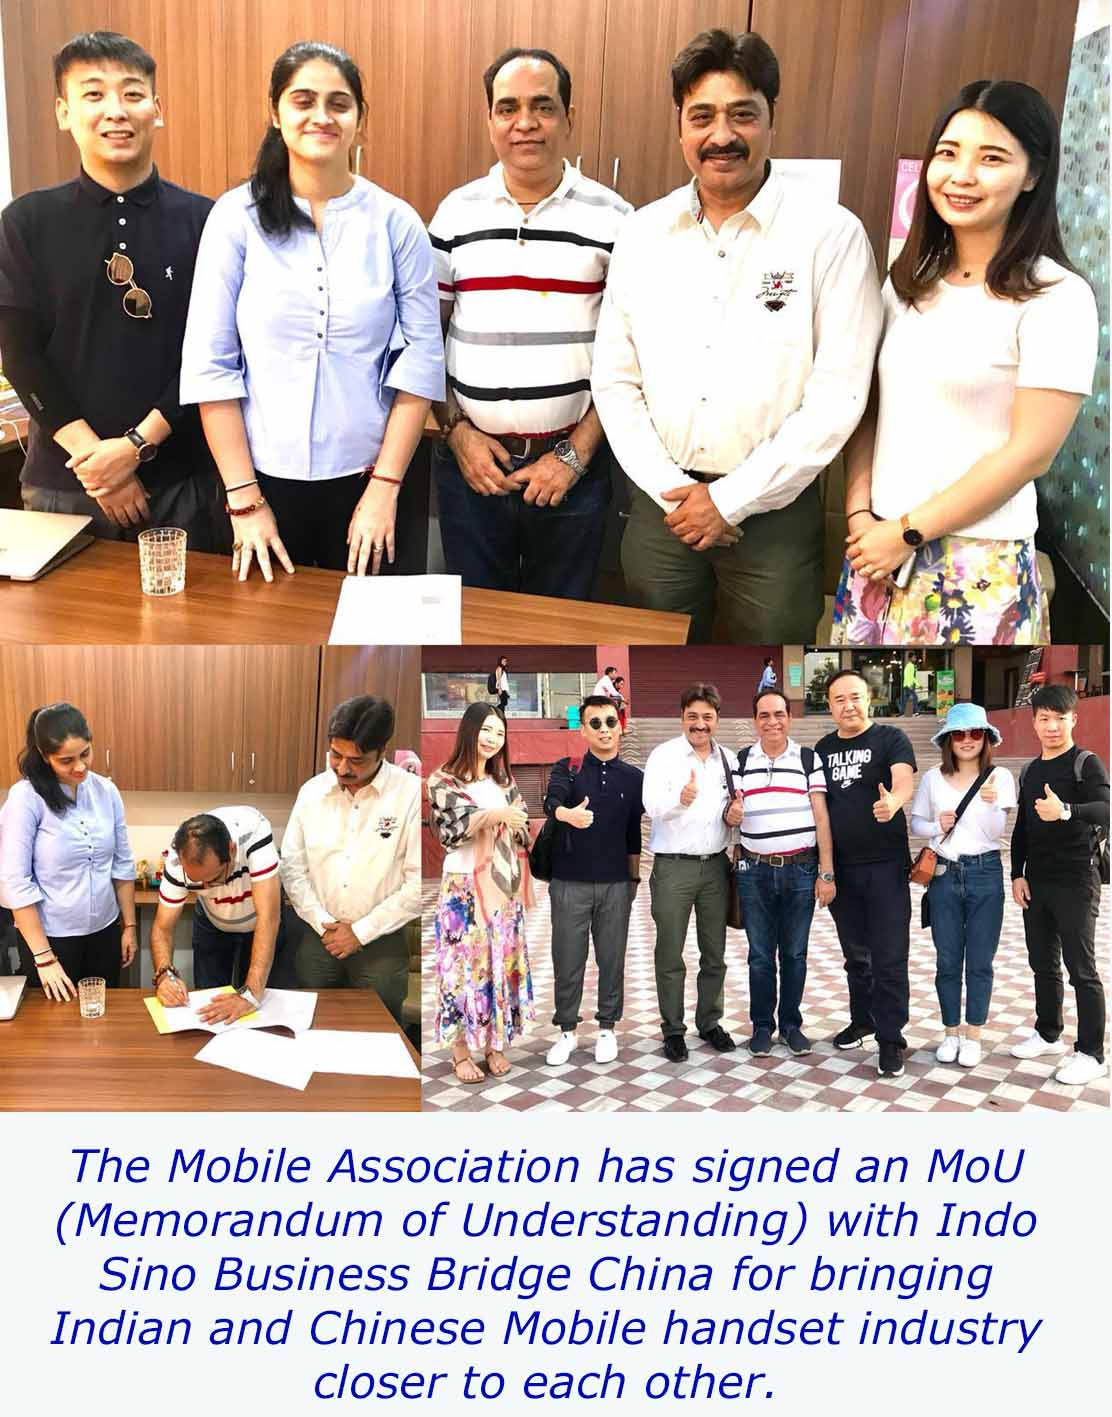 The Mobile Association signs MoU with Indo Sino Business Bridge China